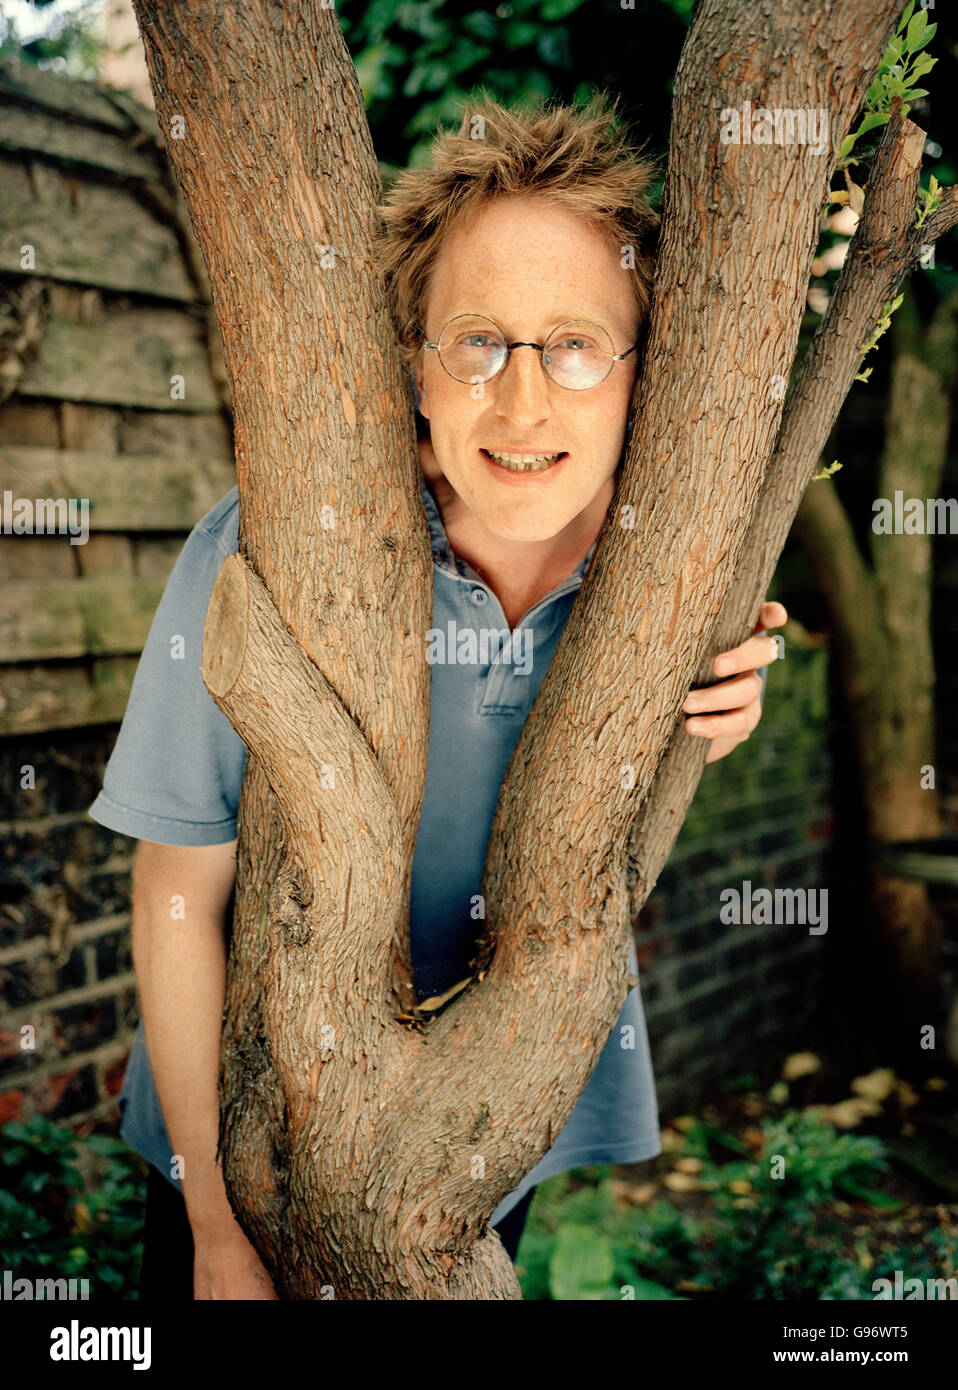 Jon Ronson English author, screenwriter and journalist photographed at his home in London, England, United Kingdom. - Stock Image